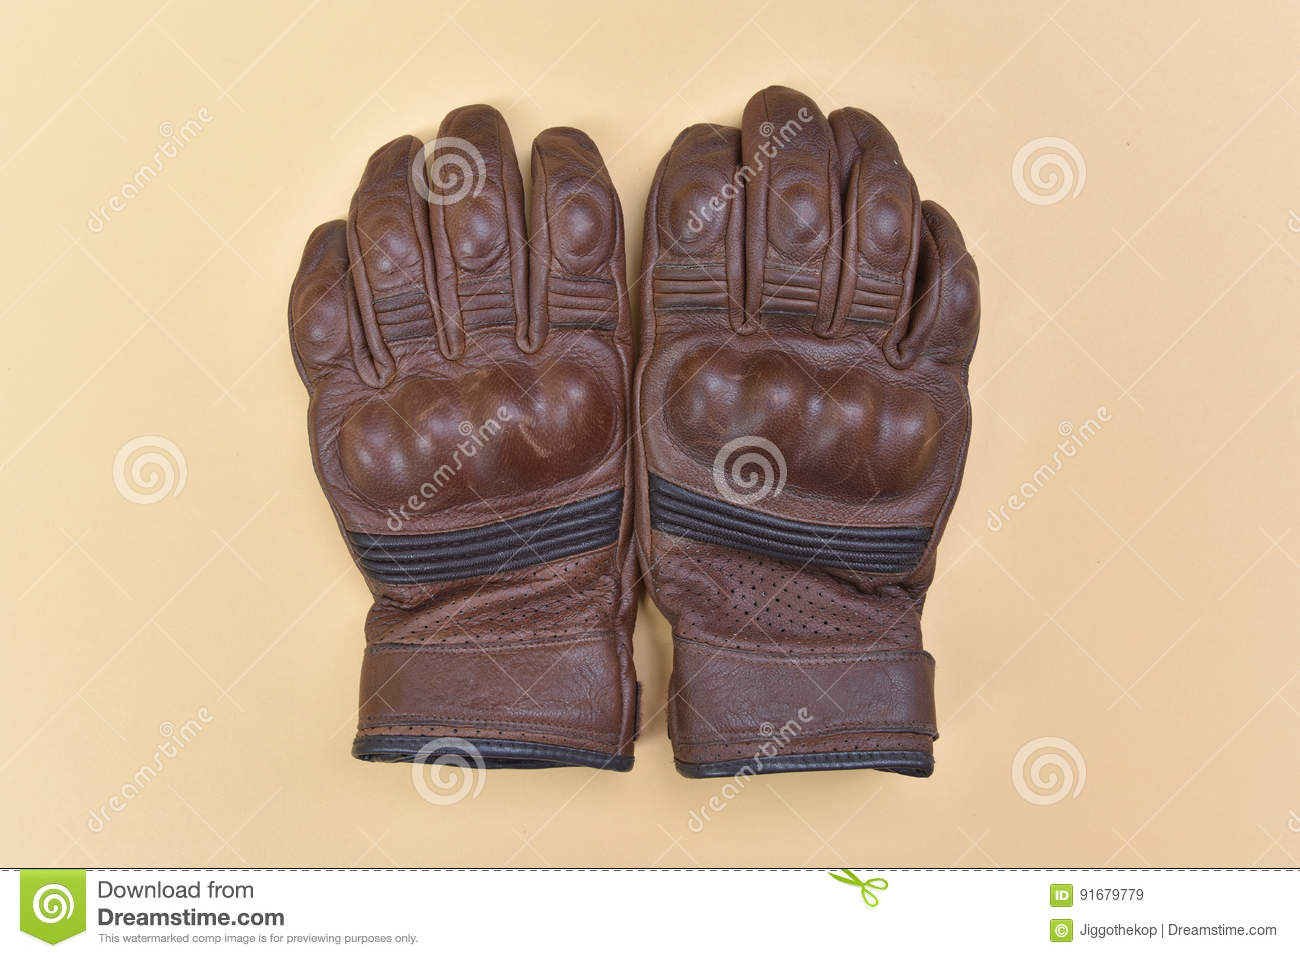 00496d3977d56 Tan Brown Leather Gloves For Riding A Motorcycle Or Bicycle Stock ...